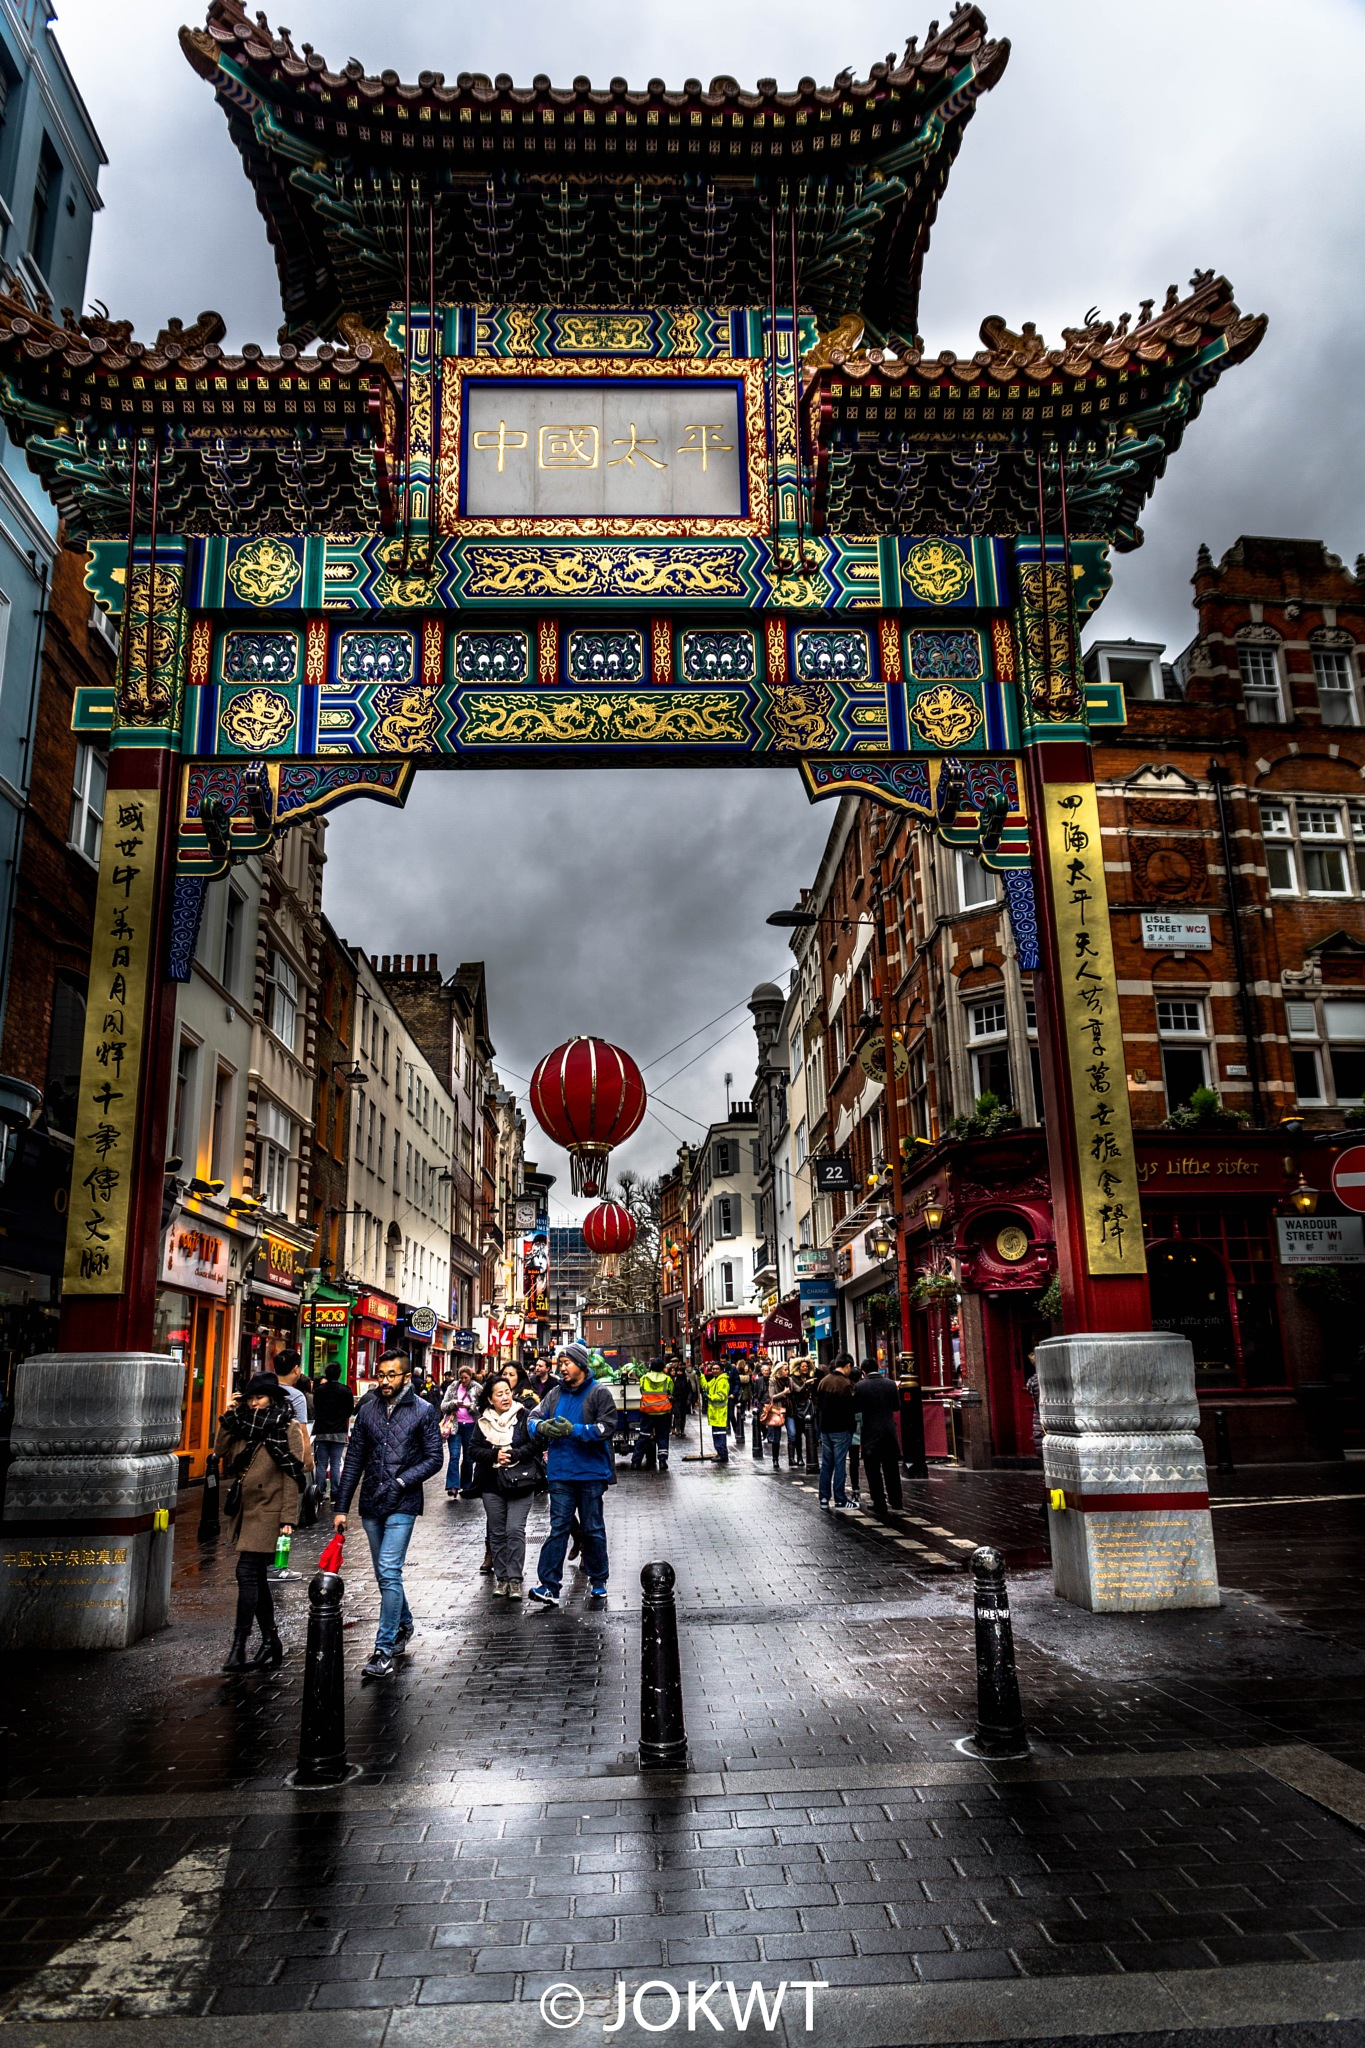 china town - london by Y.Allugman